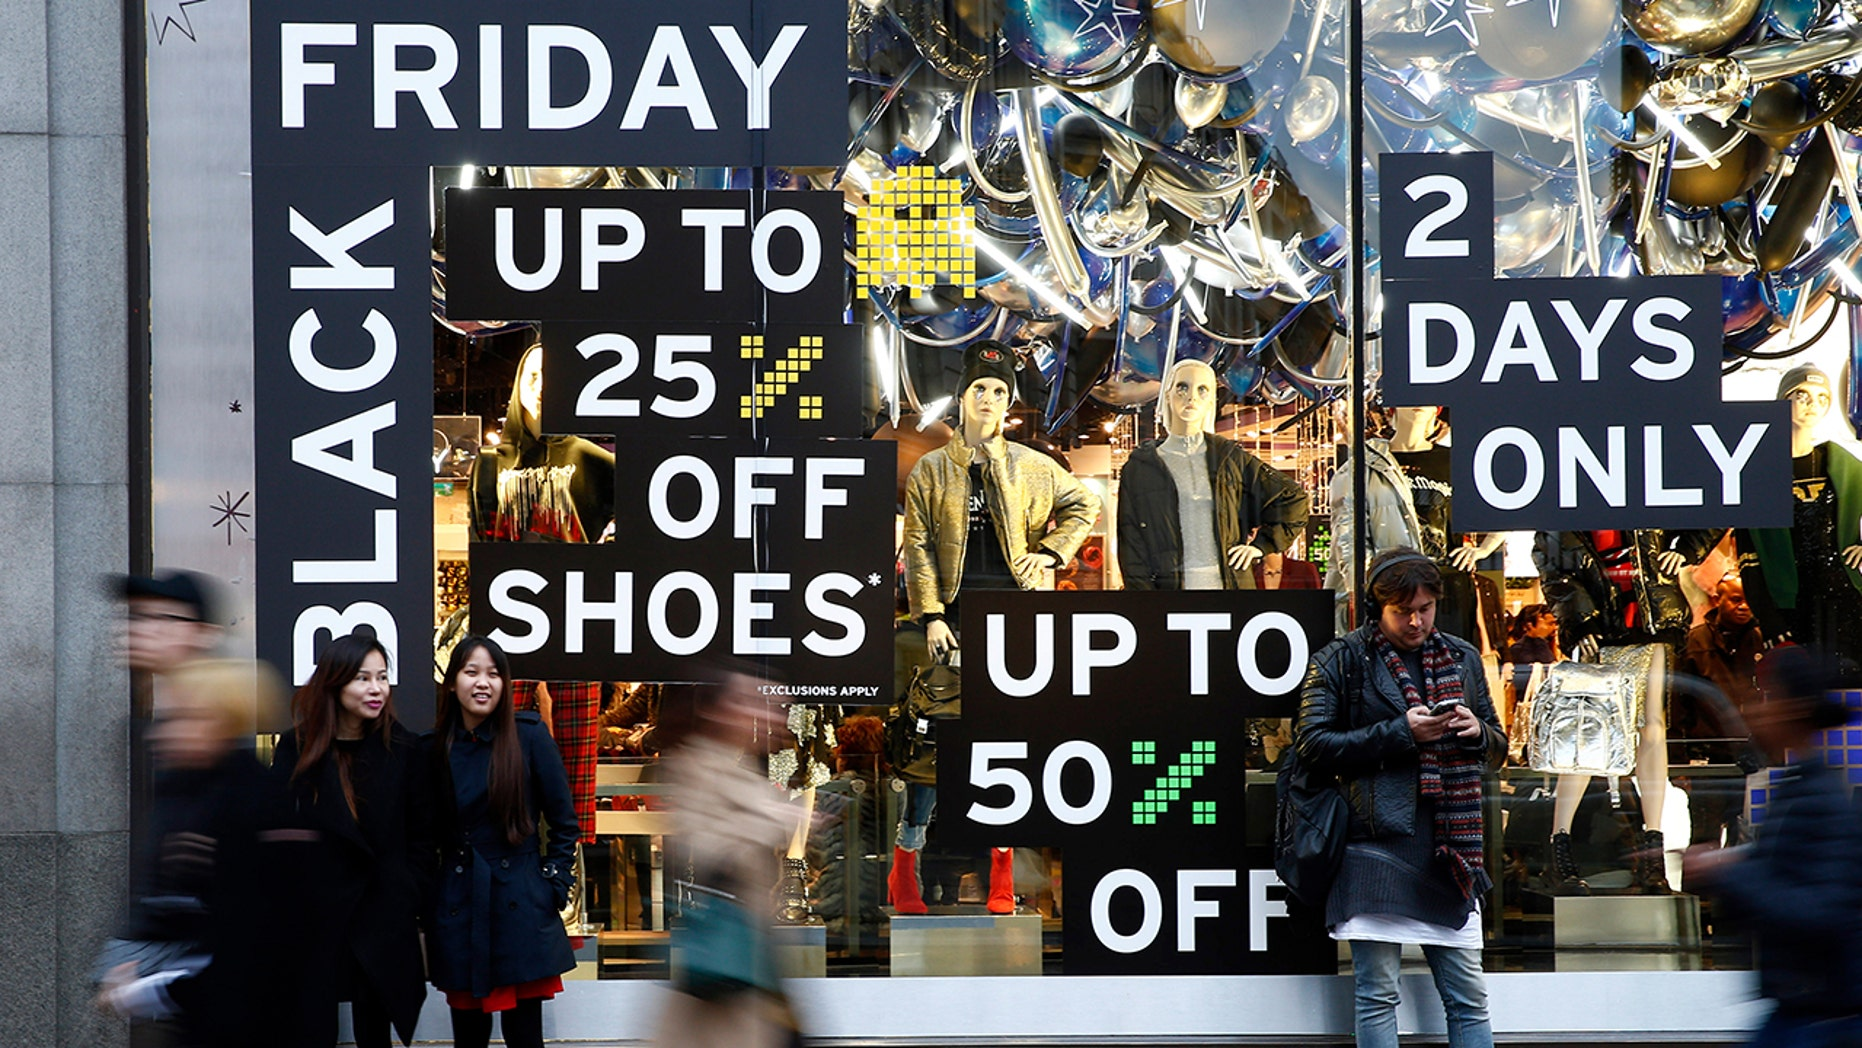 Black Friday is often full of chaos...follow these tips to have a successful shopping experience.